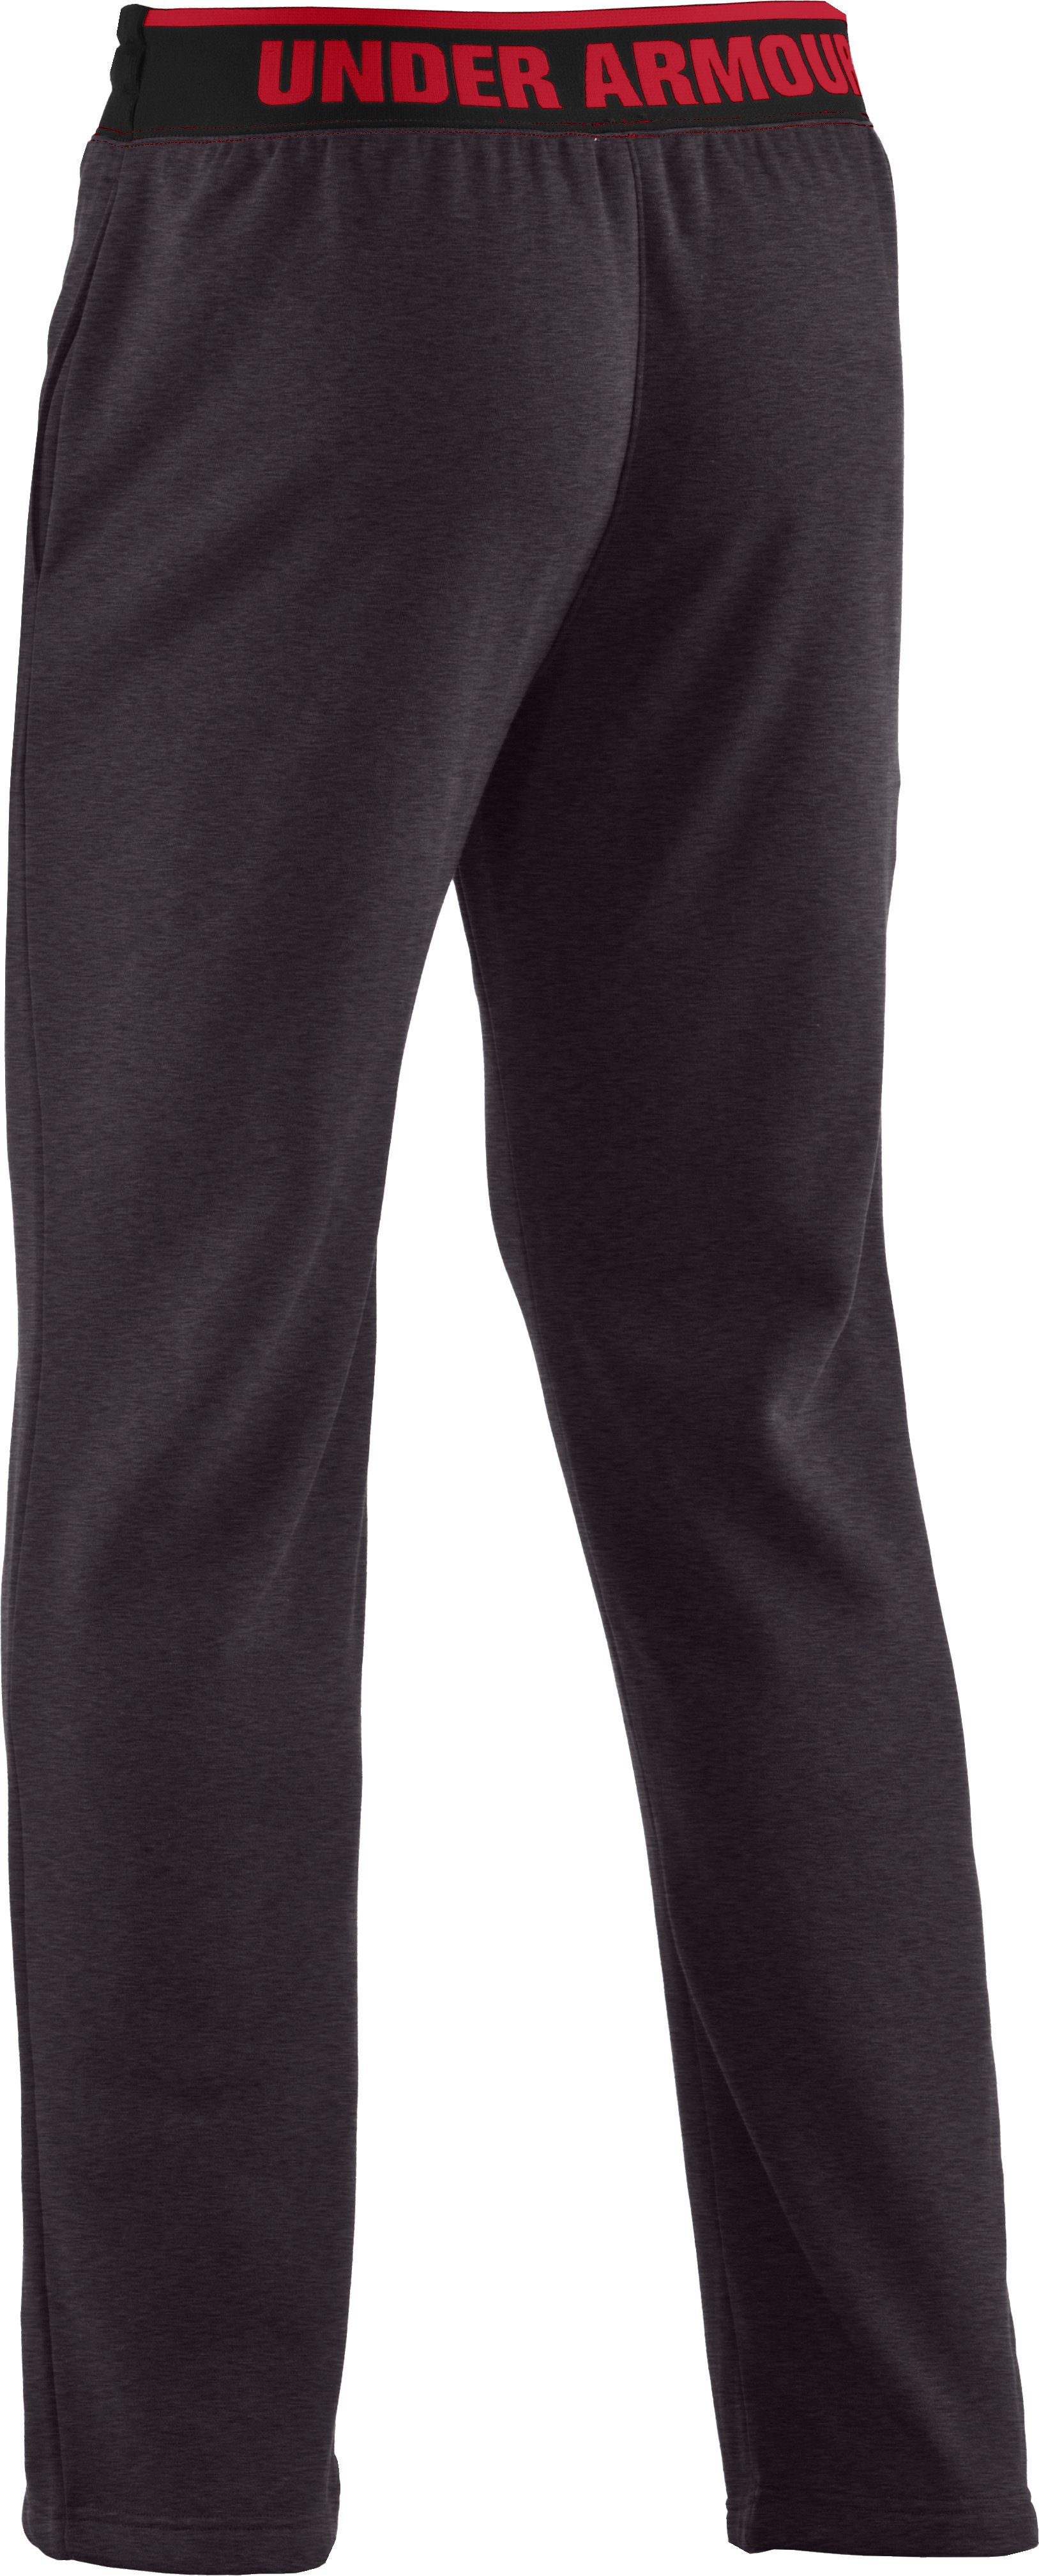 Men's Charged Cotton® Storm Transit Pants, Carbon Heather